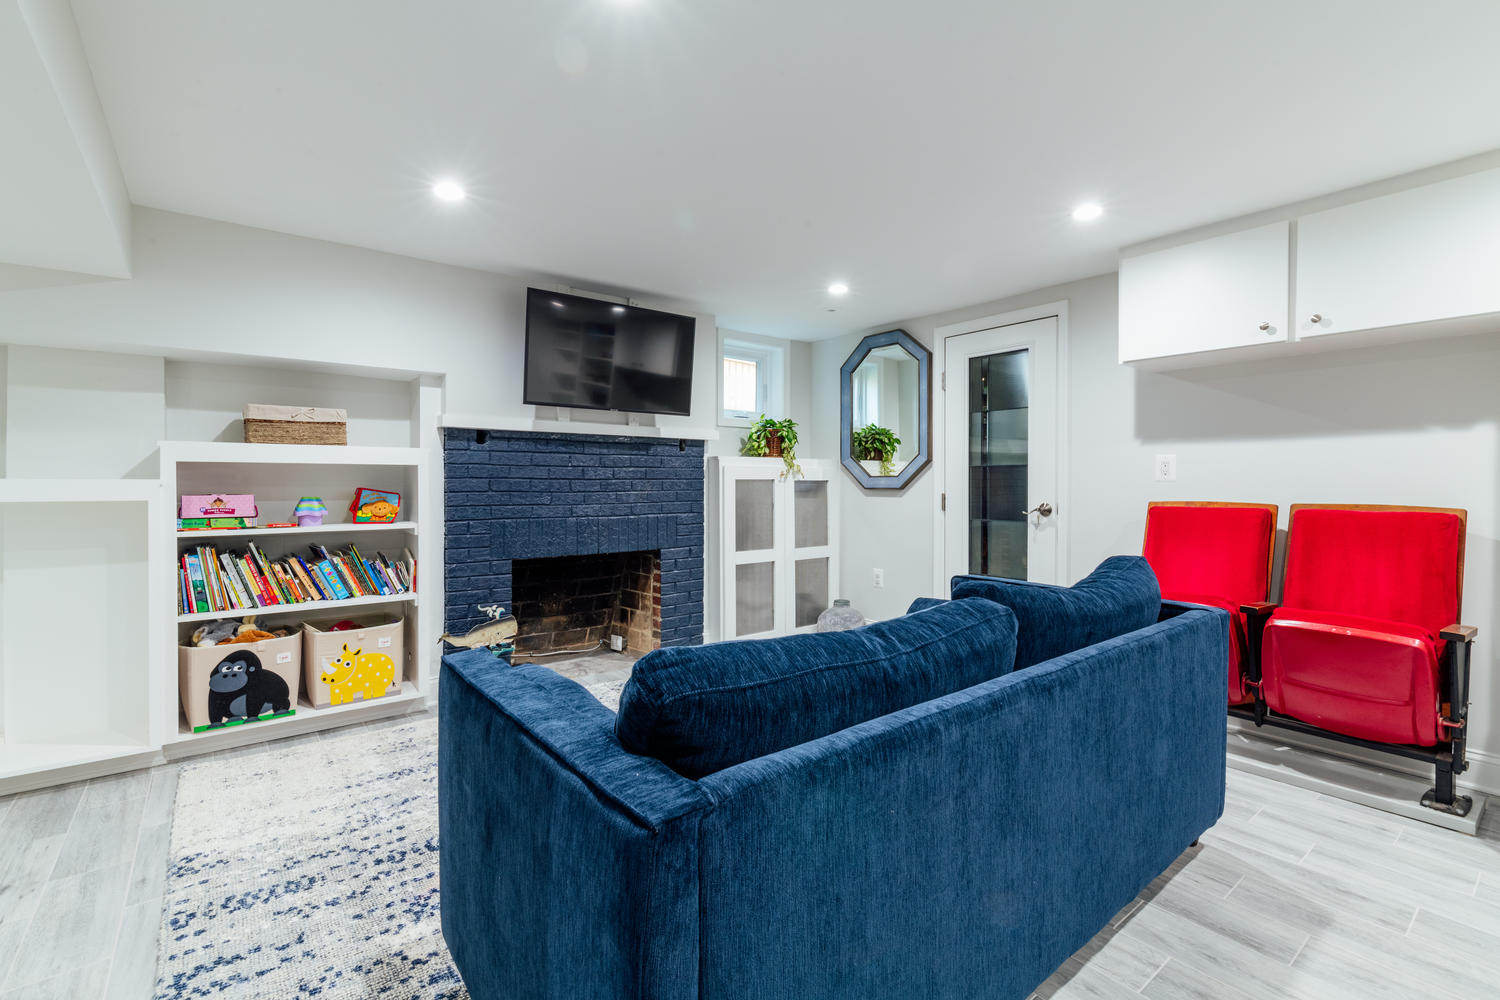 Small Space, Big Impact: Contractor of the Year Award for Basement Renovation